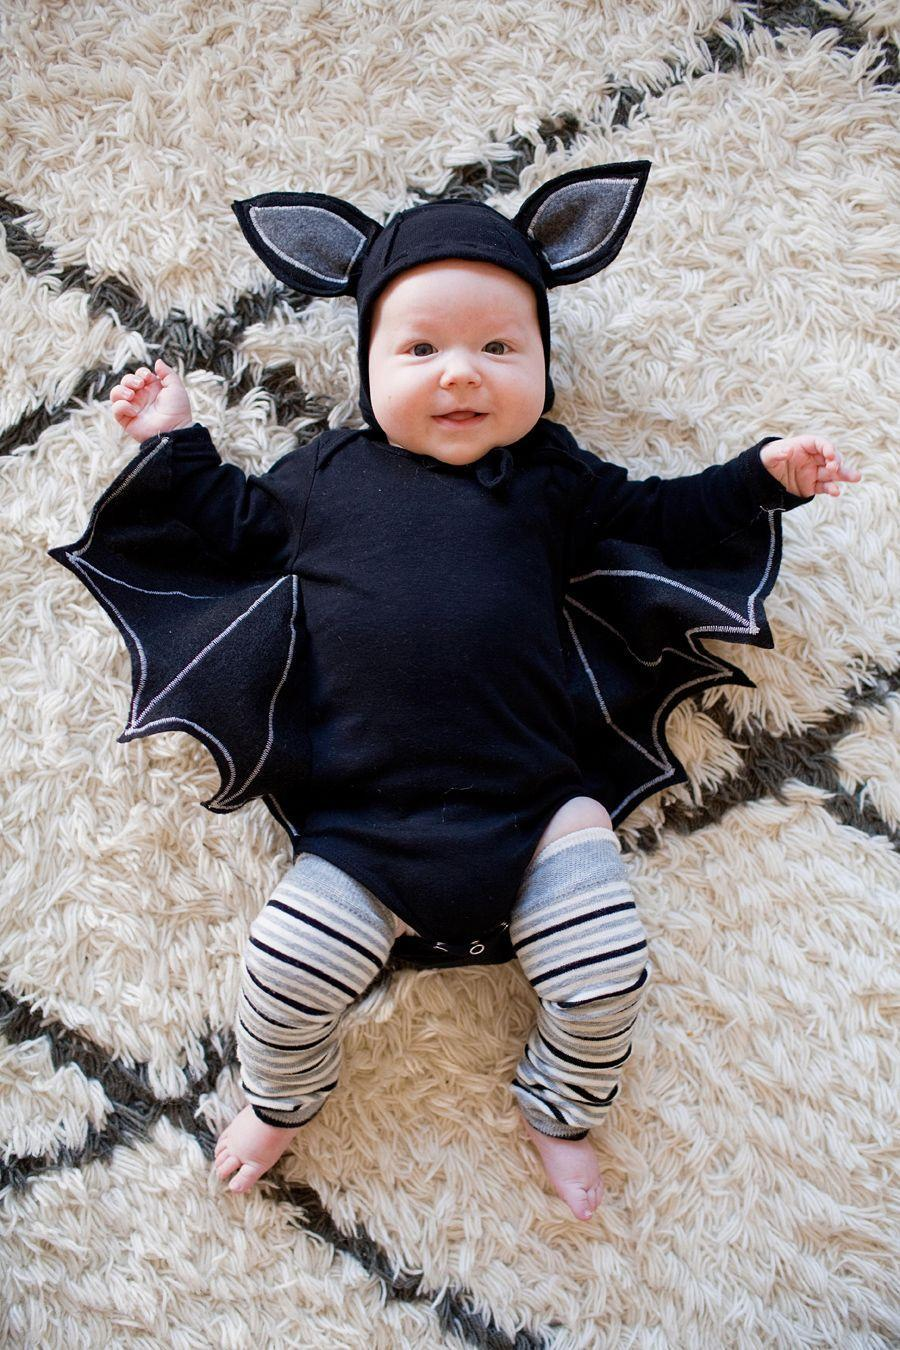 """<p>There's nothing batty about this adorable DIY infant costume. Just dress your little on in a black onesie and make wings out of black felt and white chalk.</p><p><em><a href=""""https://tellloveandparty.com/2014/10/tell-monster-family-costume-diy.html"""" rel=""""nofollow noopener"""" target=""""_blank"""" data-ylk=""""slk:Get the tutorial at Tell Love and Party »"""" class=""""link rapid-noclick-resp"""">Get the tutorial at Tell Love and Party »</a></em></p>"""